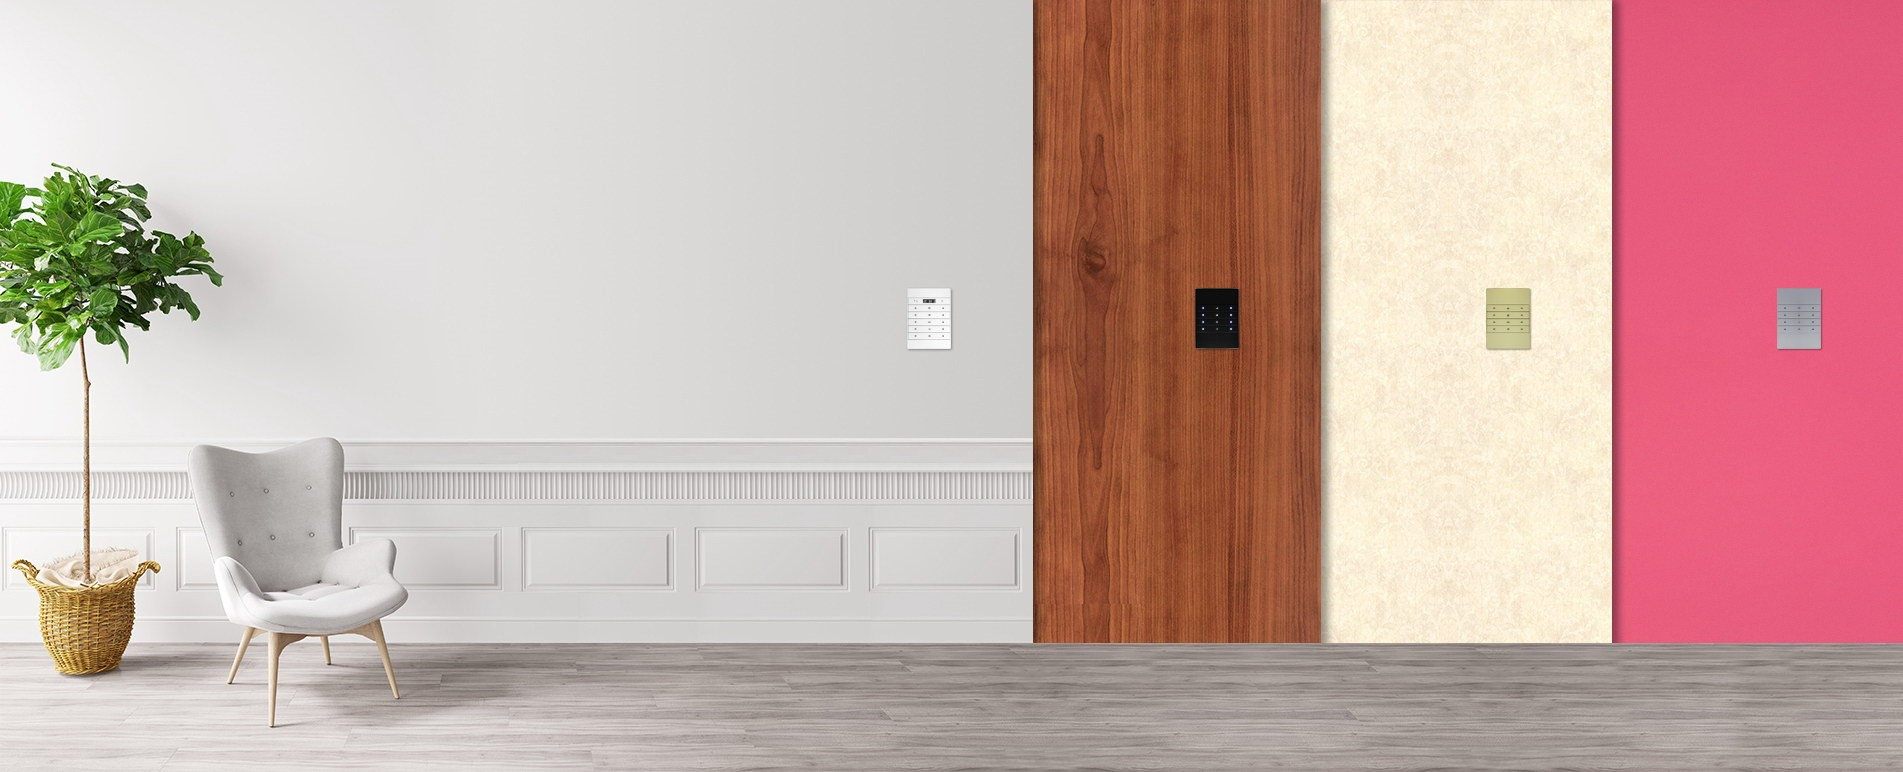 Fit all ID wall design and colors- TIS Mars Switch series